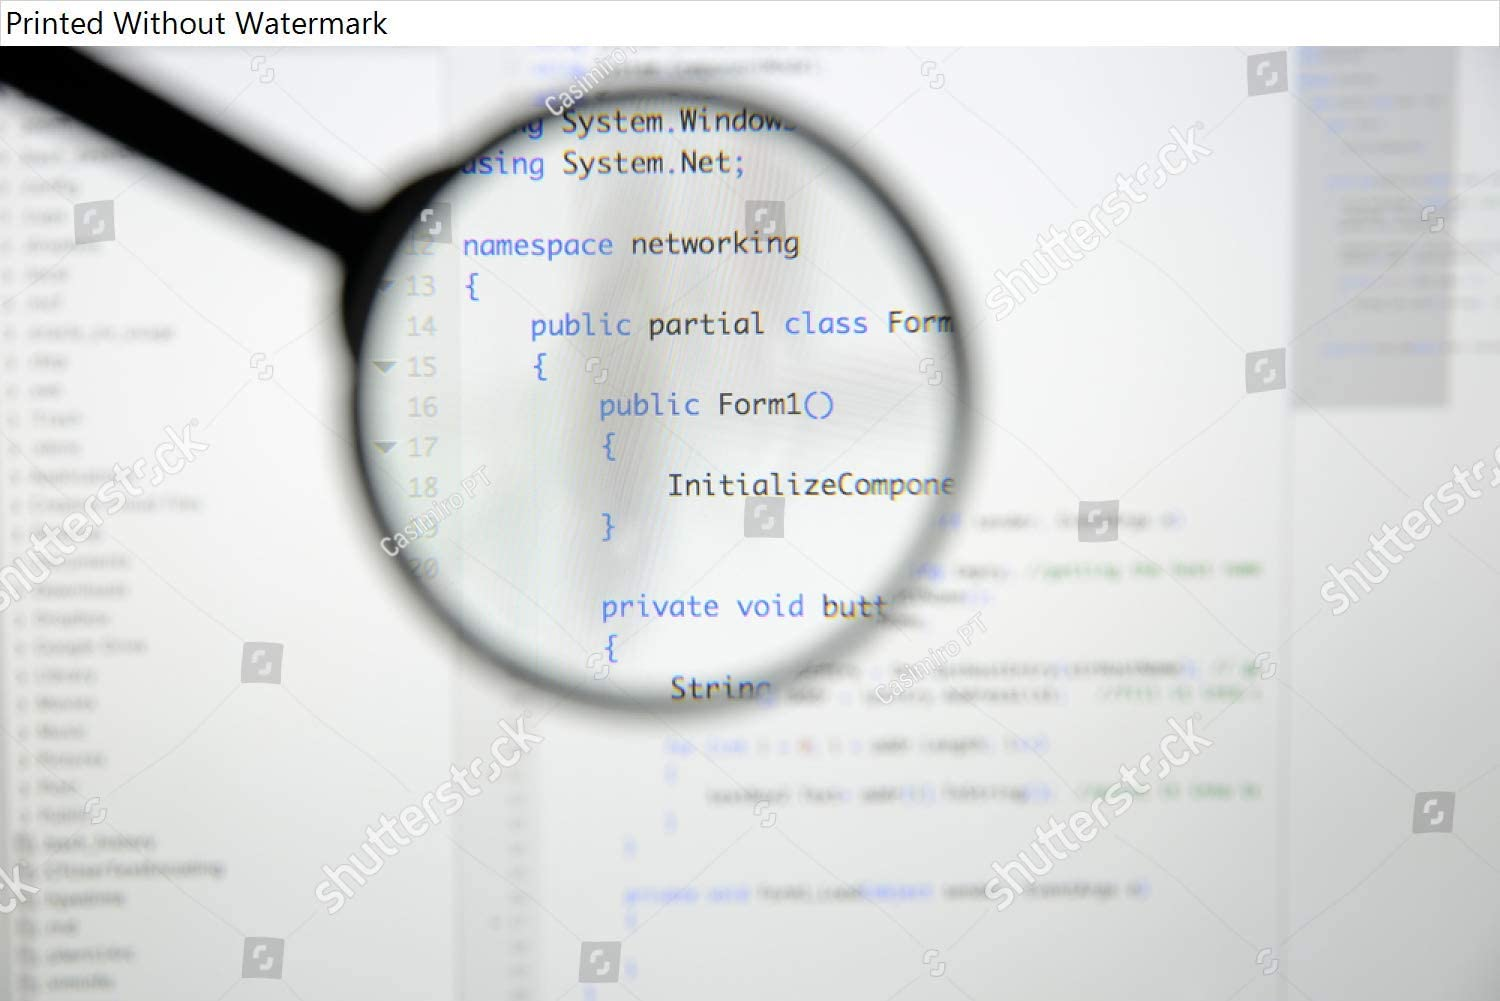 KwikMedia Poster of Real c# Code Developing Screen. Programing workflow Abstract Algorithm Concept. Lines of c# Code Visible Under Magnifying Lens.